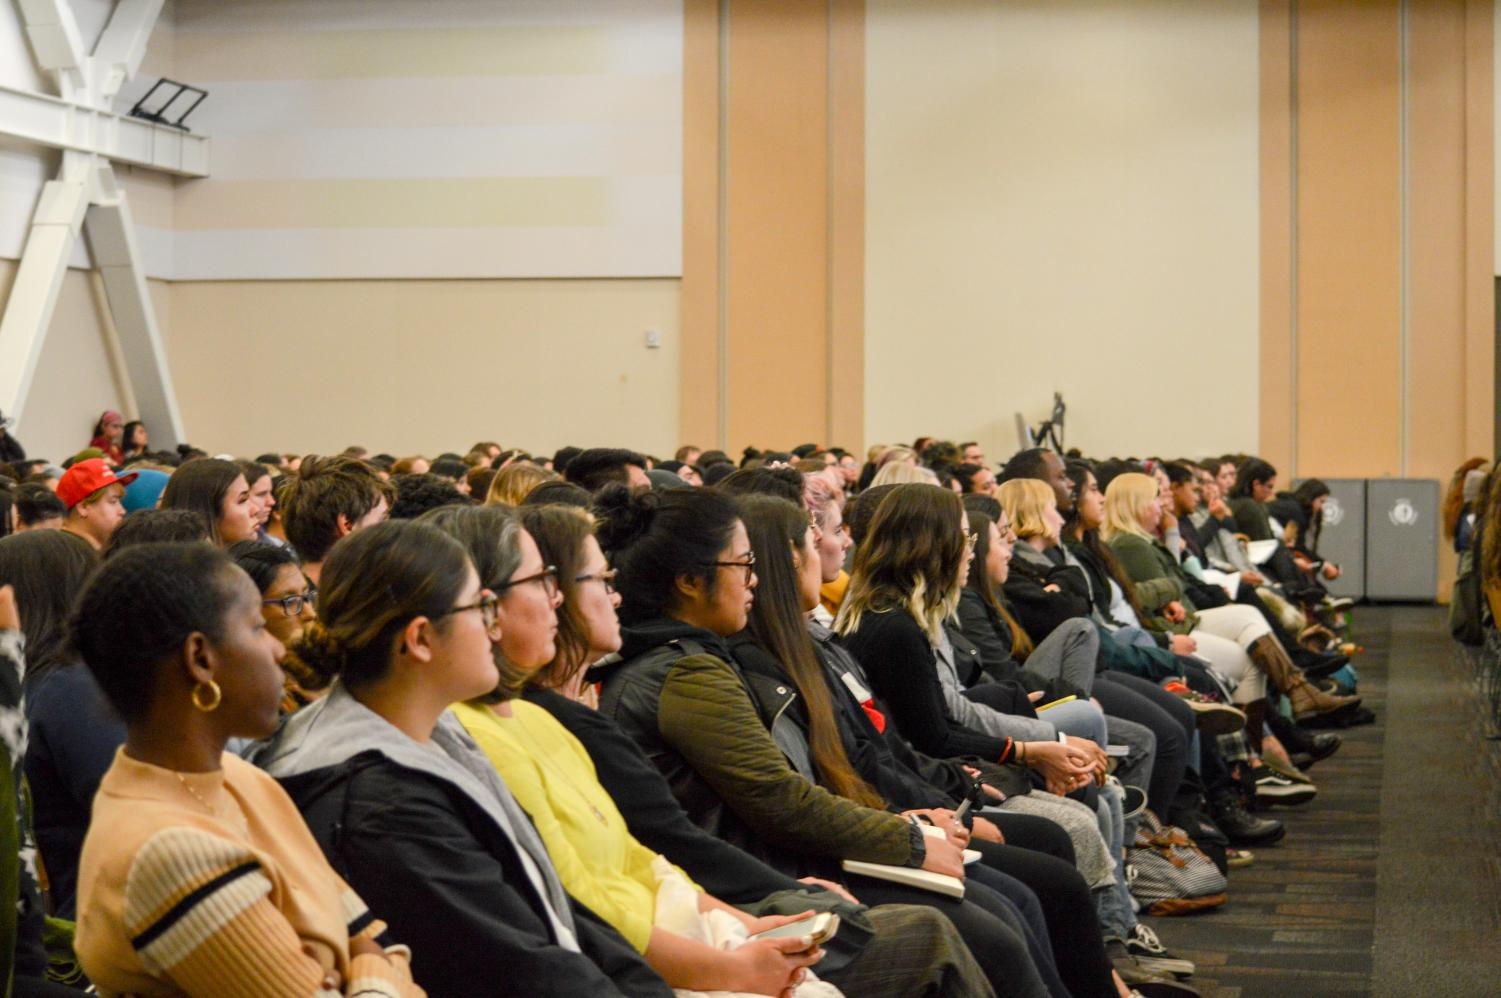 Founder of the Me Too movement, Tarana Burke speaks to a crowd of students. Students sit gathered in the USU ballroom to listen to Tarana Burke's speech.